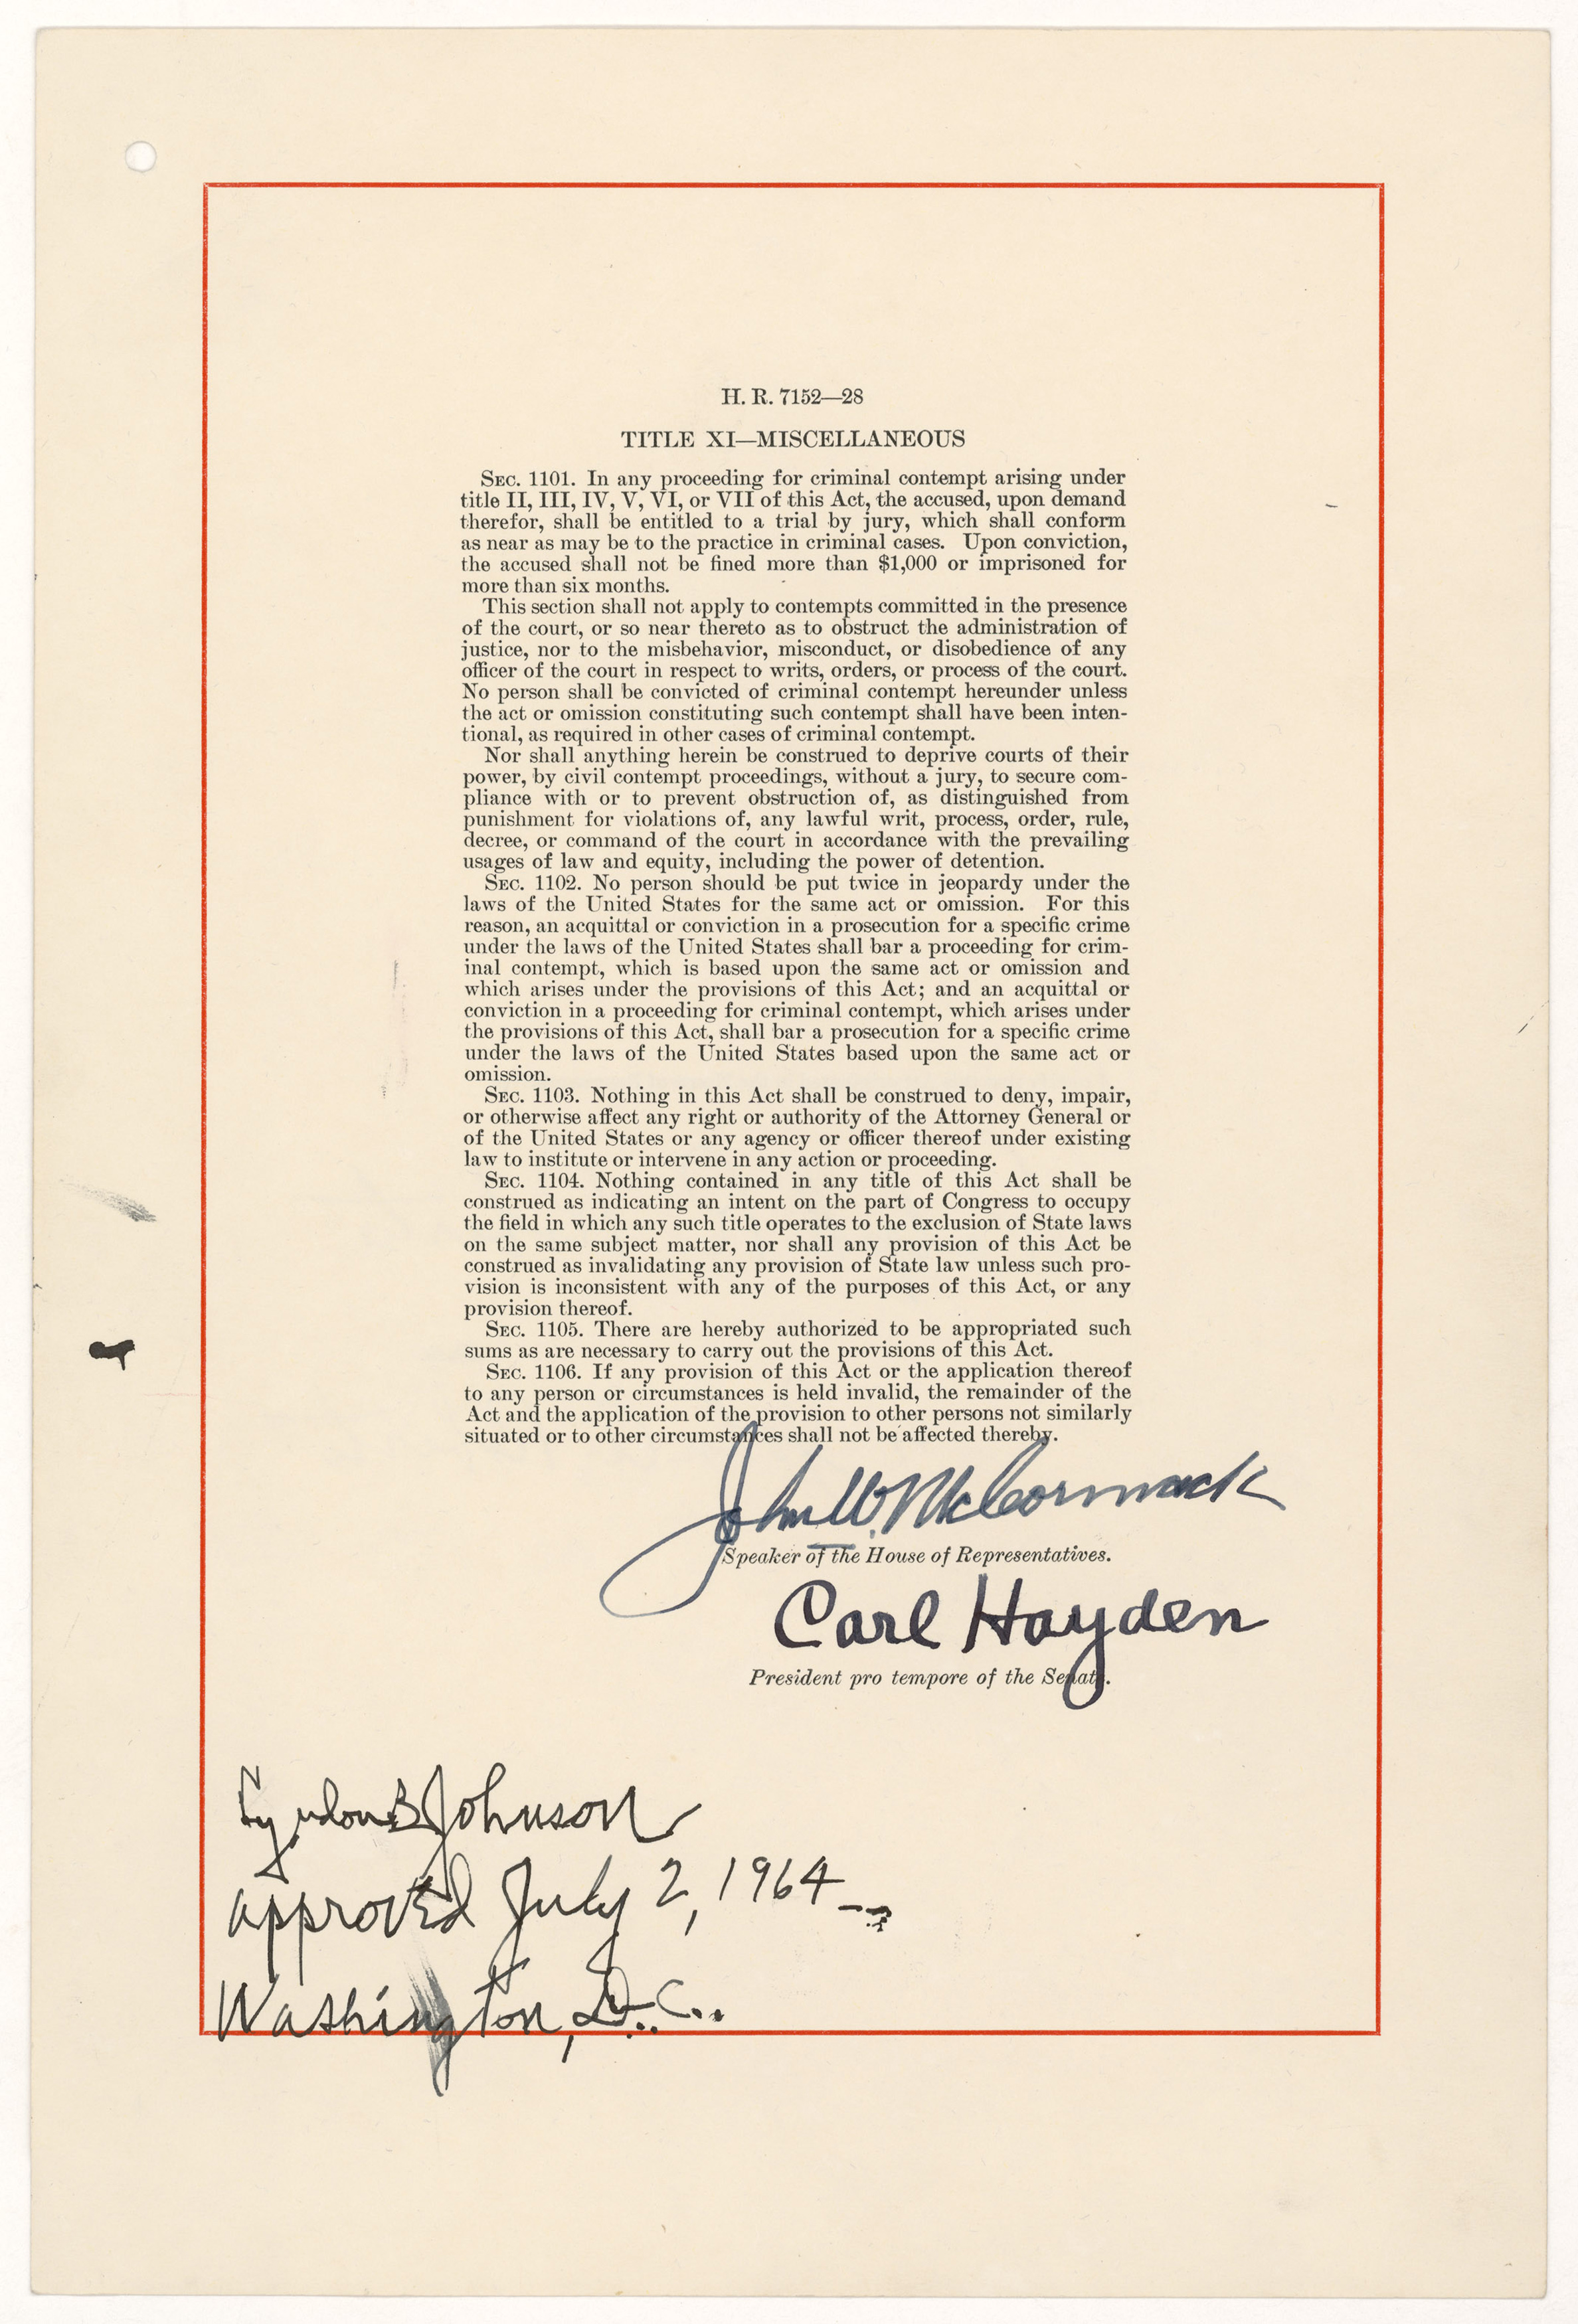 a history of the civil rights act of 1964 The civil rights act of 1964 the civil rights movement deeply affected american society among its most important achievements were two major civil rights laws passed by congress.